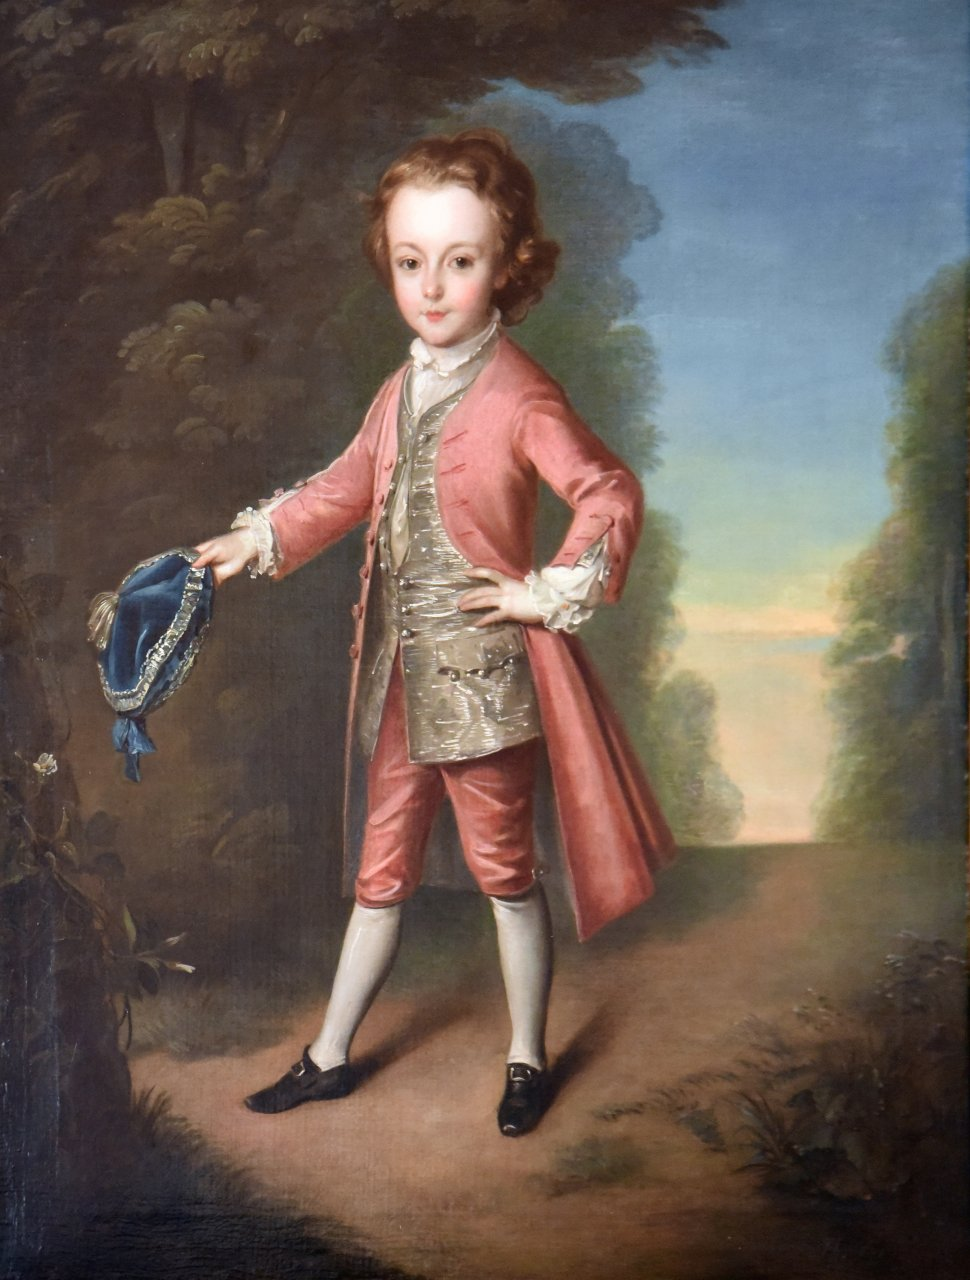 Full-length, wearing pink coat and breeches with silver waistcoat, holding a blue velvet cap edged with silver thread, a landscape beyond. Signed l.r. Ph. Mercier/1740. Oil on canvas, 48 3/4 inches by 39 1/2 inches.